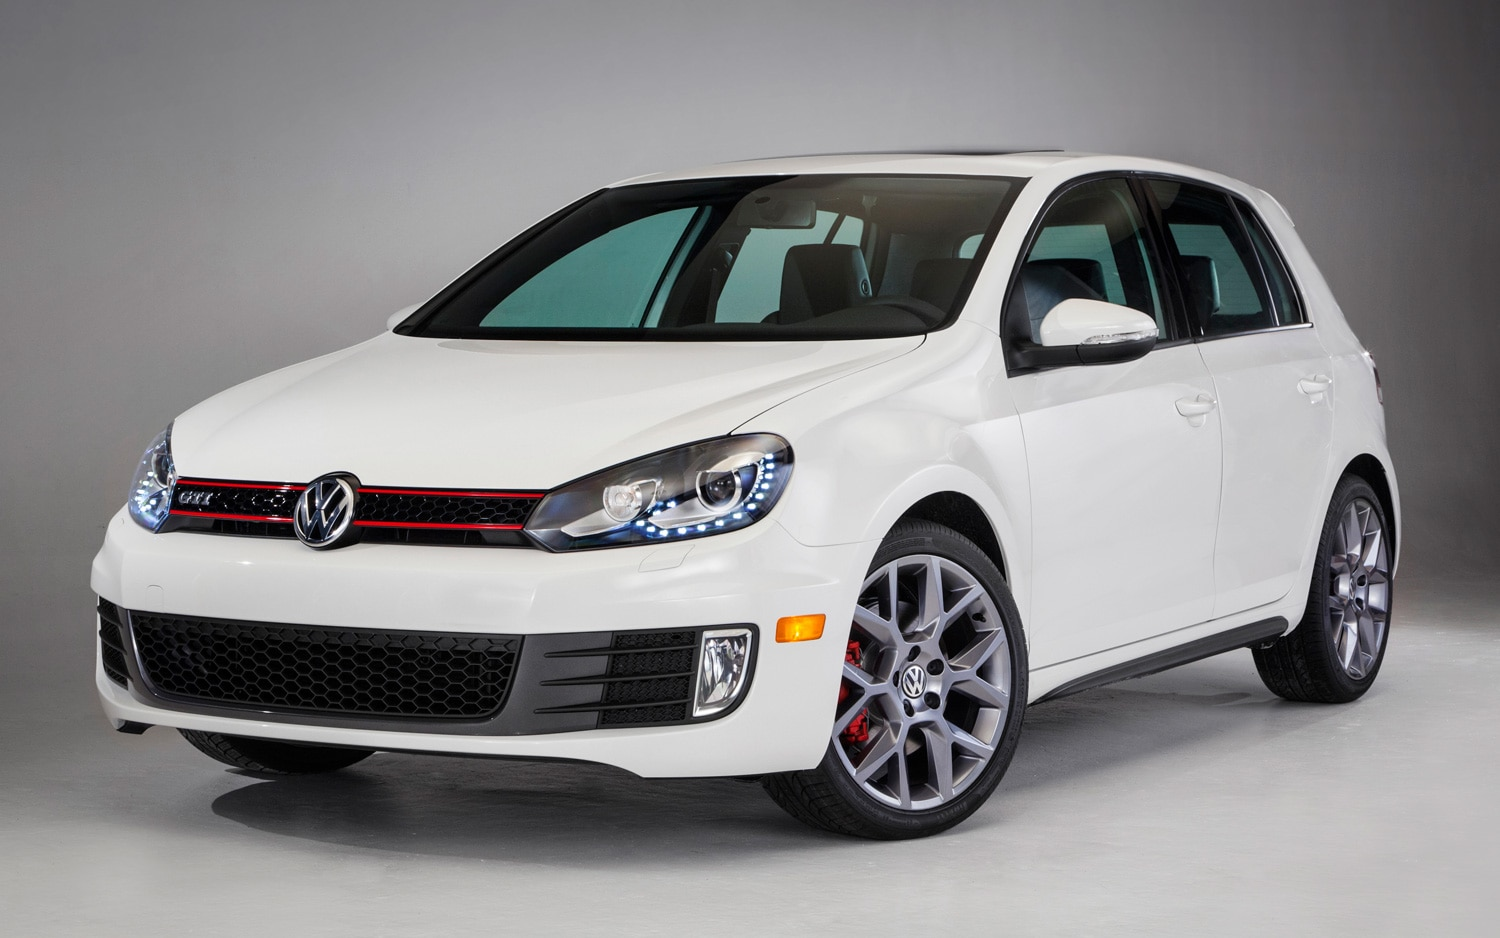 2013 Volkswagen GTI Drivers Edition Front Three Quarters View